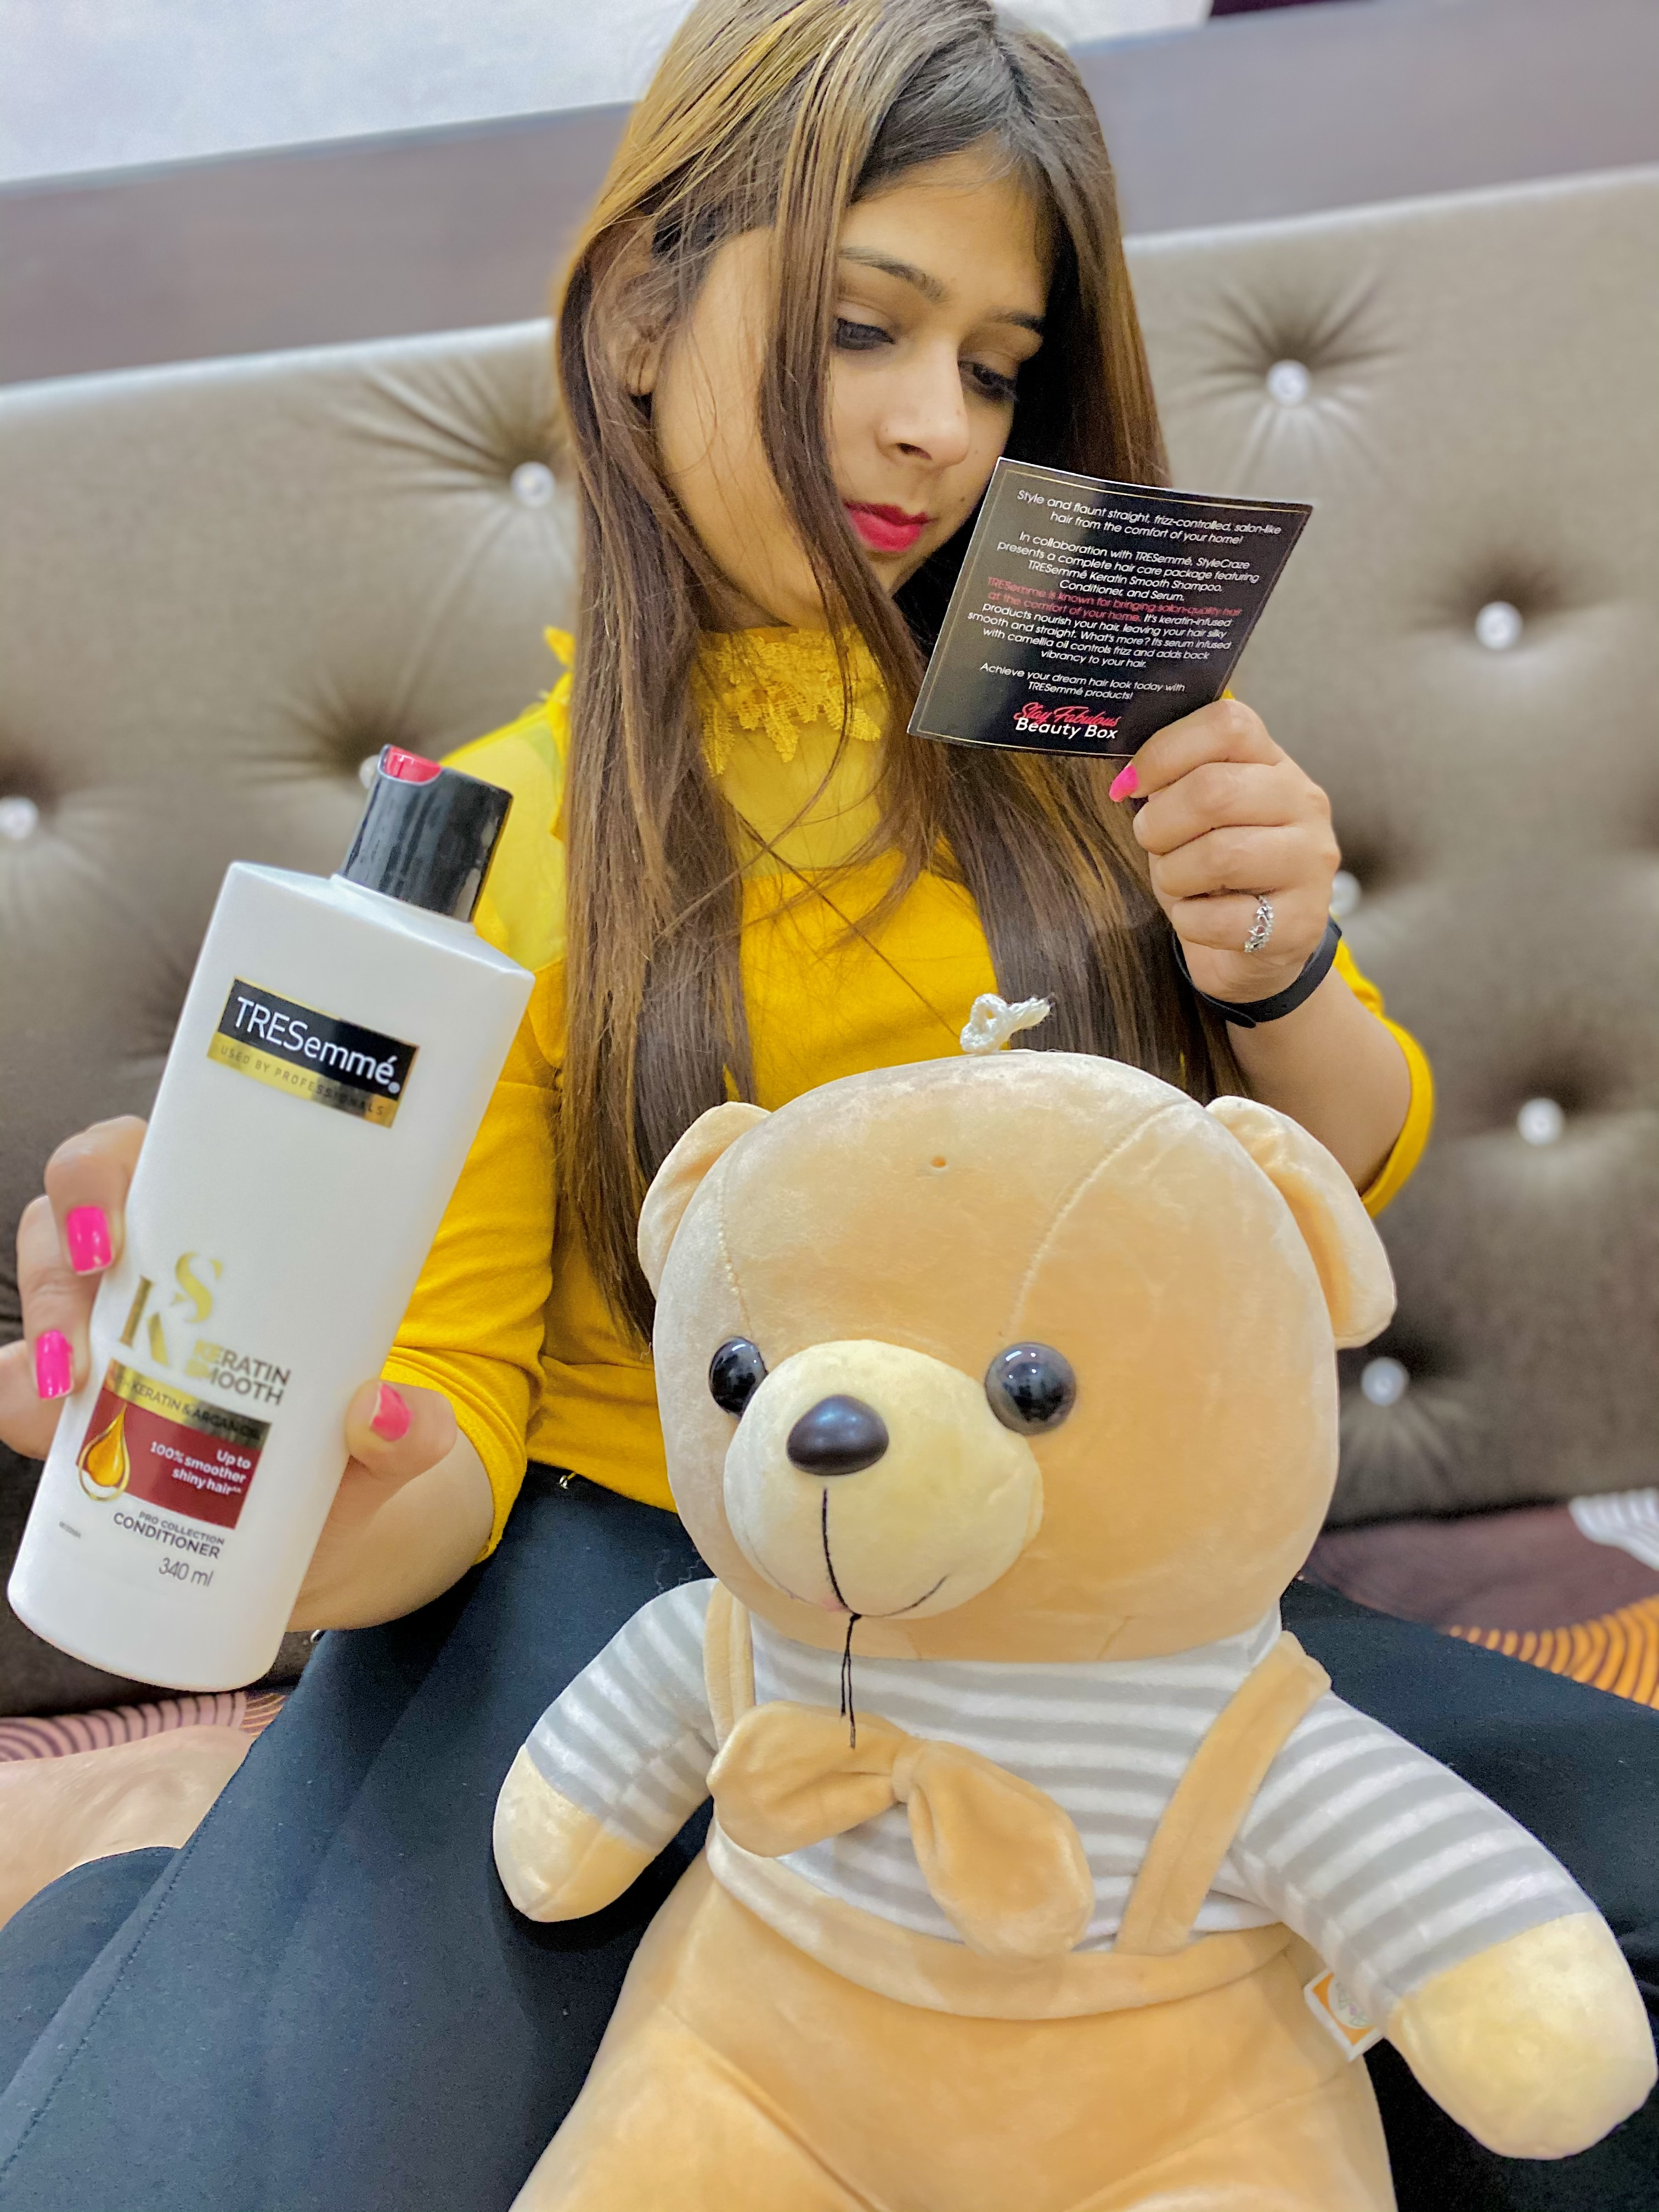 Tresemme Smooth and Shine Conditioner -Features fir hair-By sonia_saini